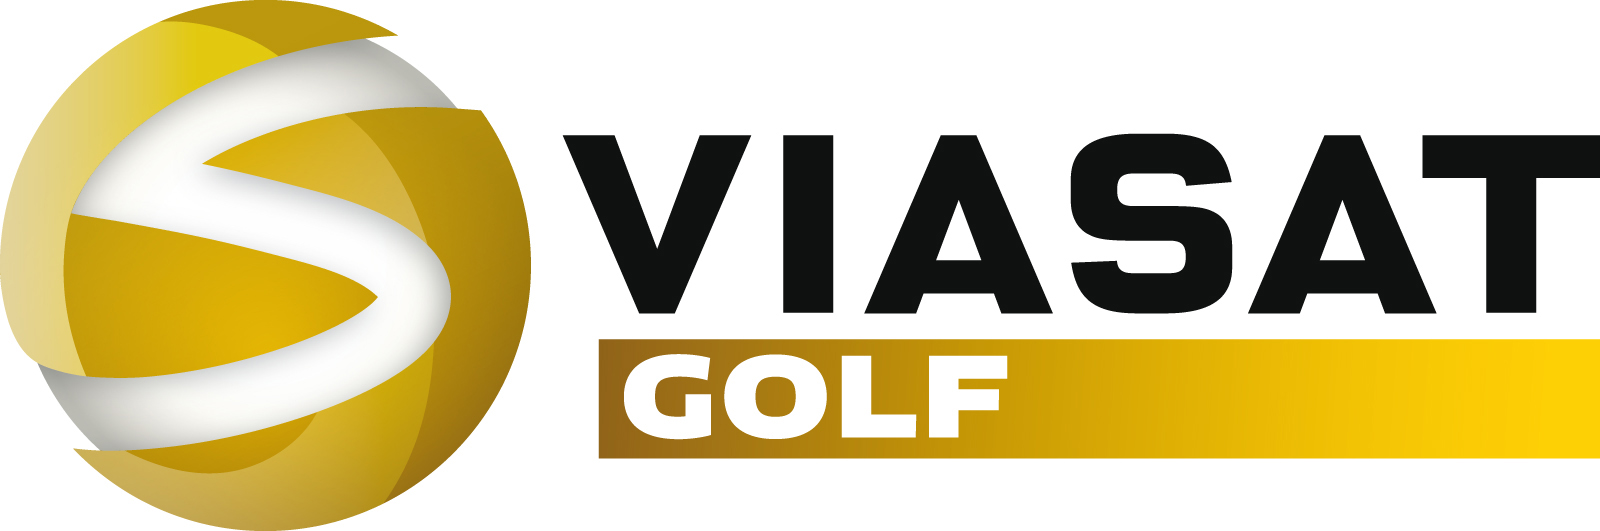 viasatgolf